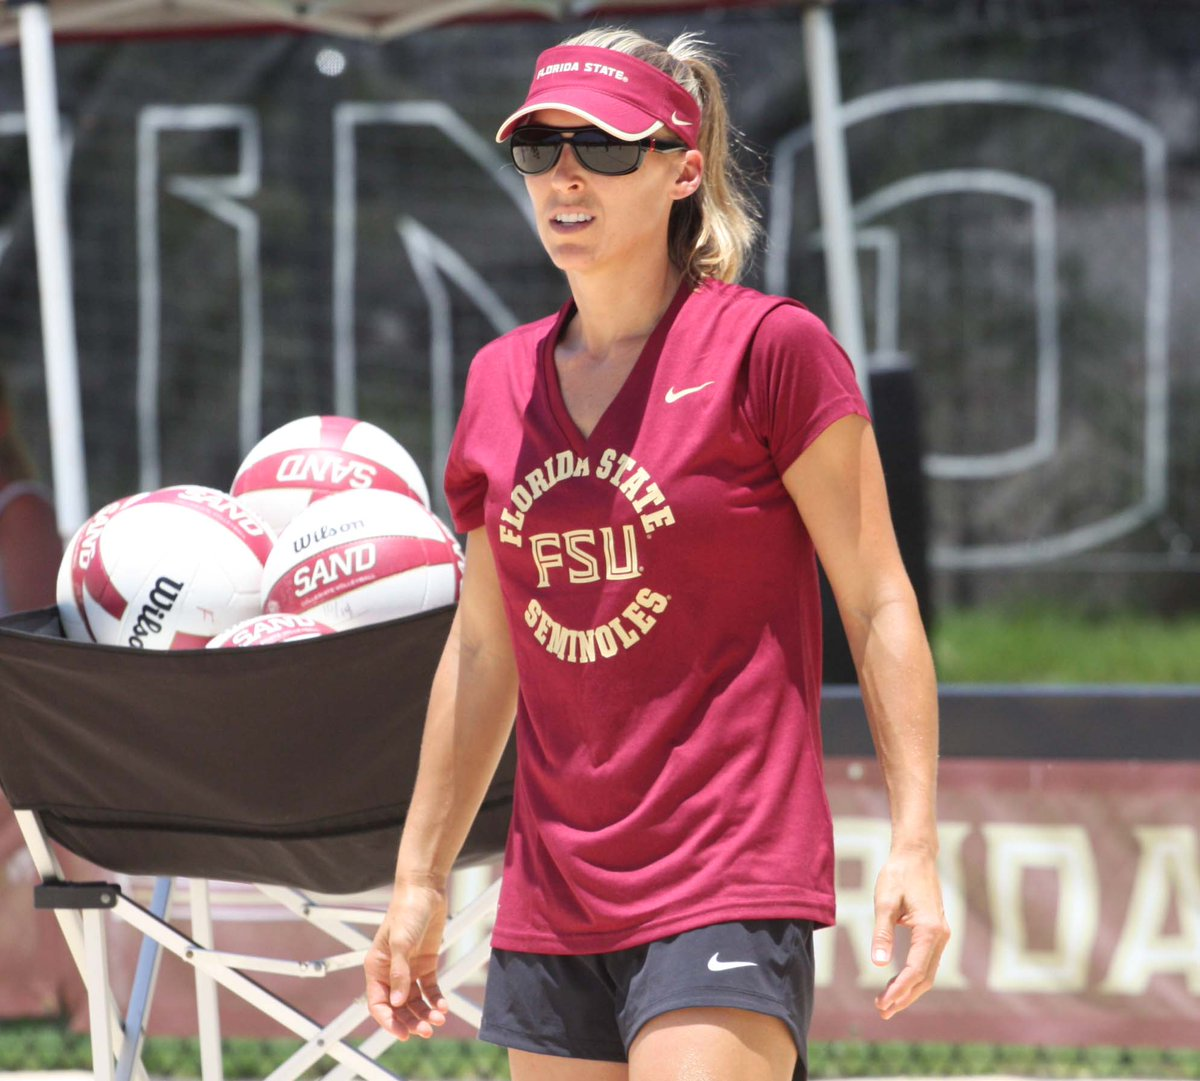 Fsu Beach Volleyball On Twitter Check Out Latest Seminole Sports Magazine Feature On Fsu Beachvb 1st Yr Coach Brooke Niles Https T Co A4j9q2vola Https T Co Rltflrrh89